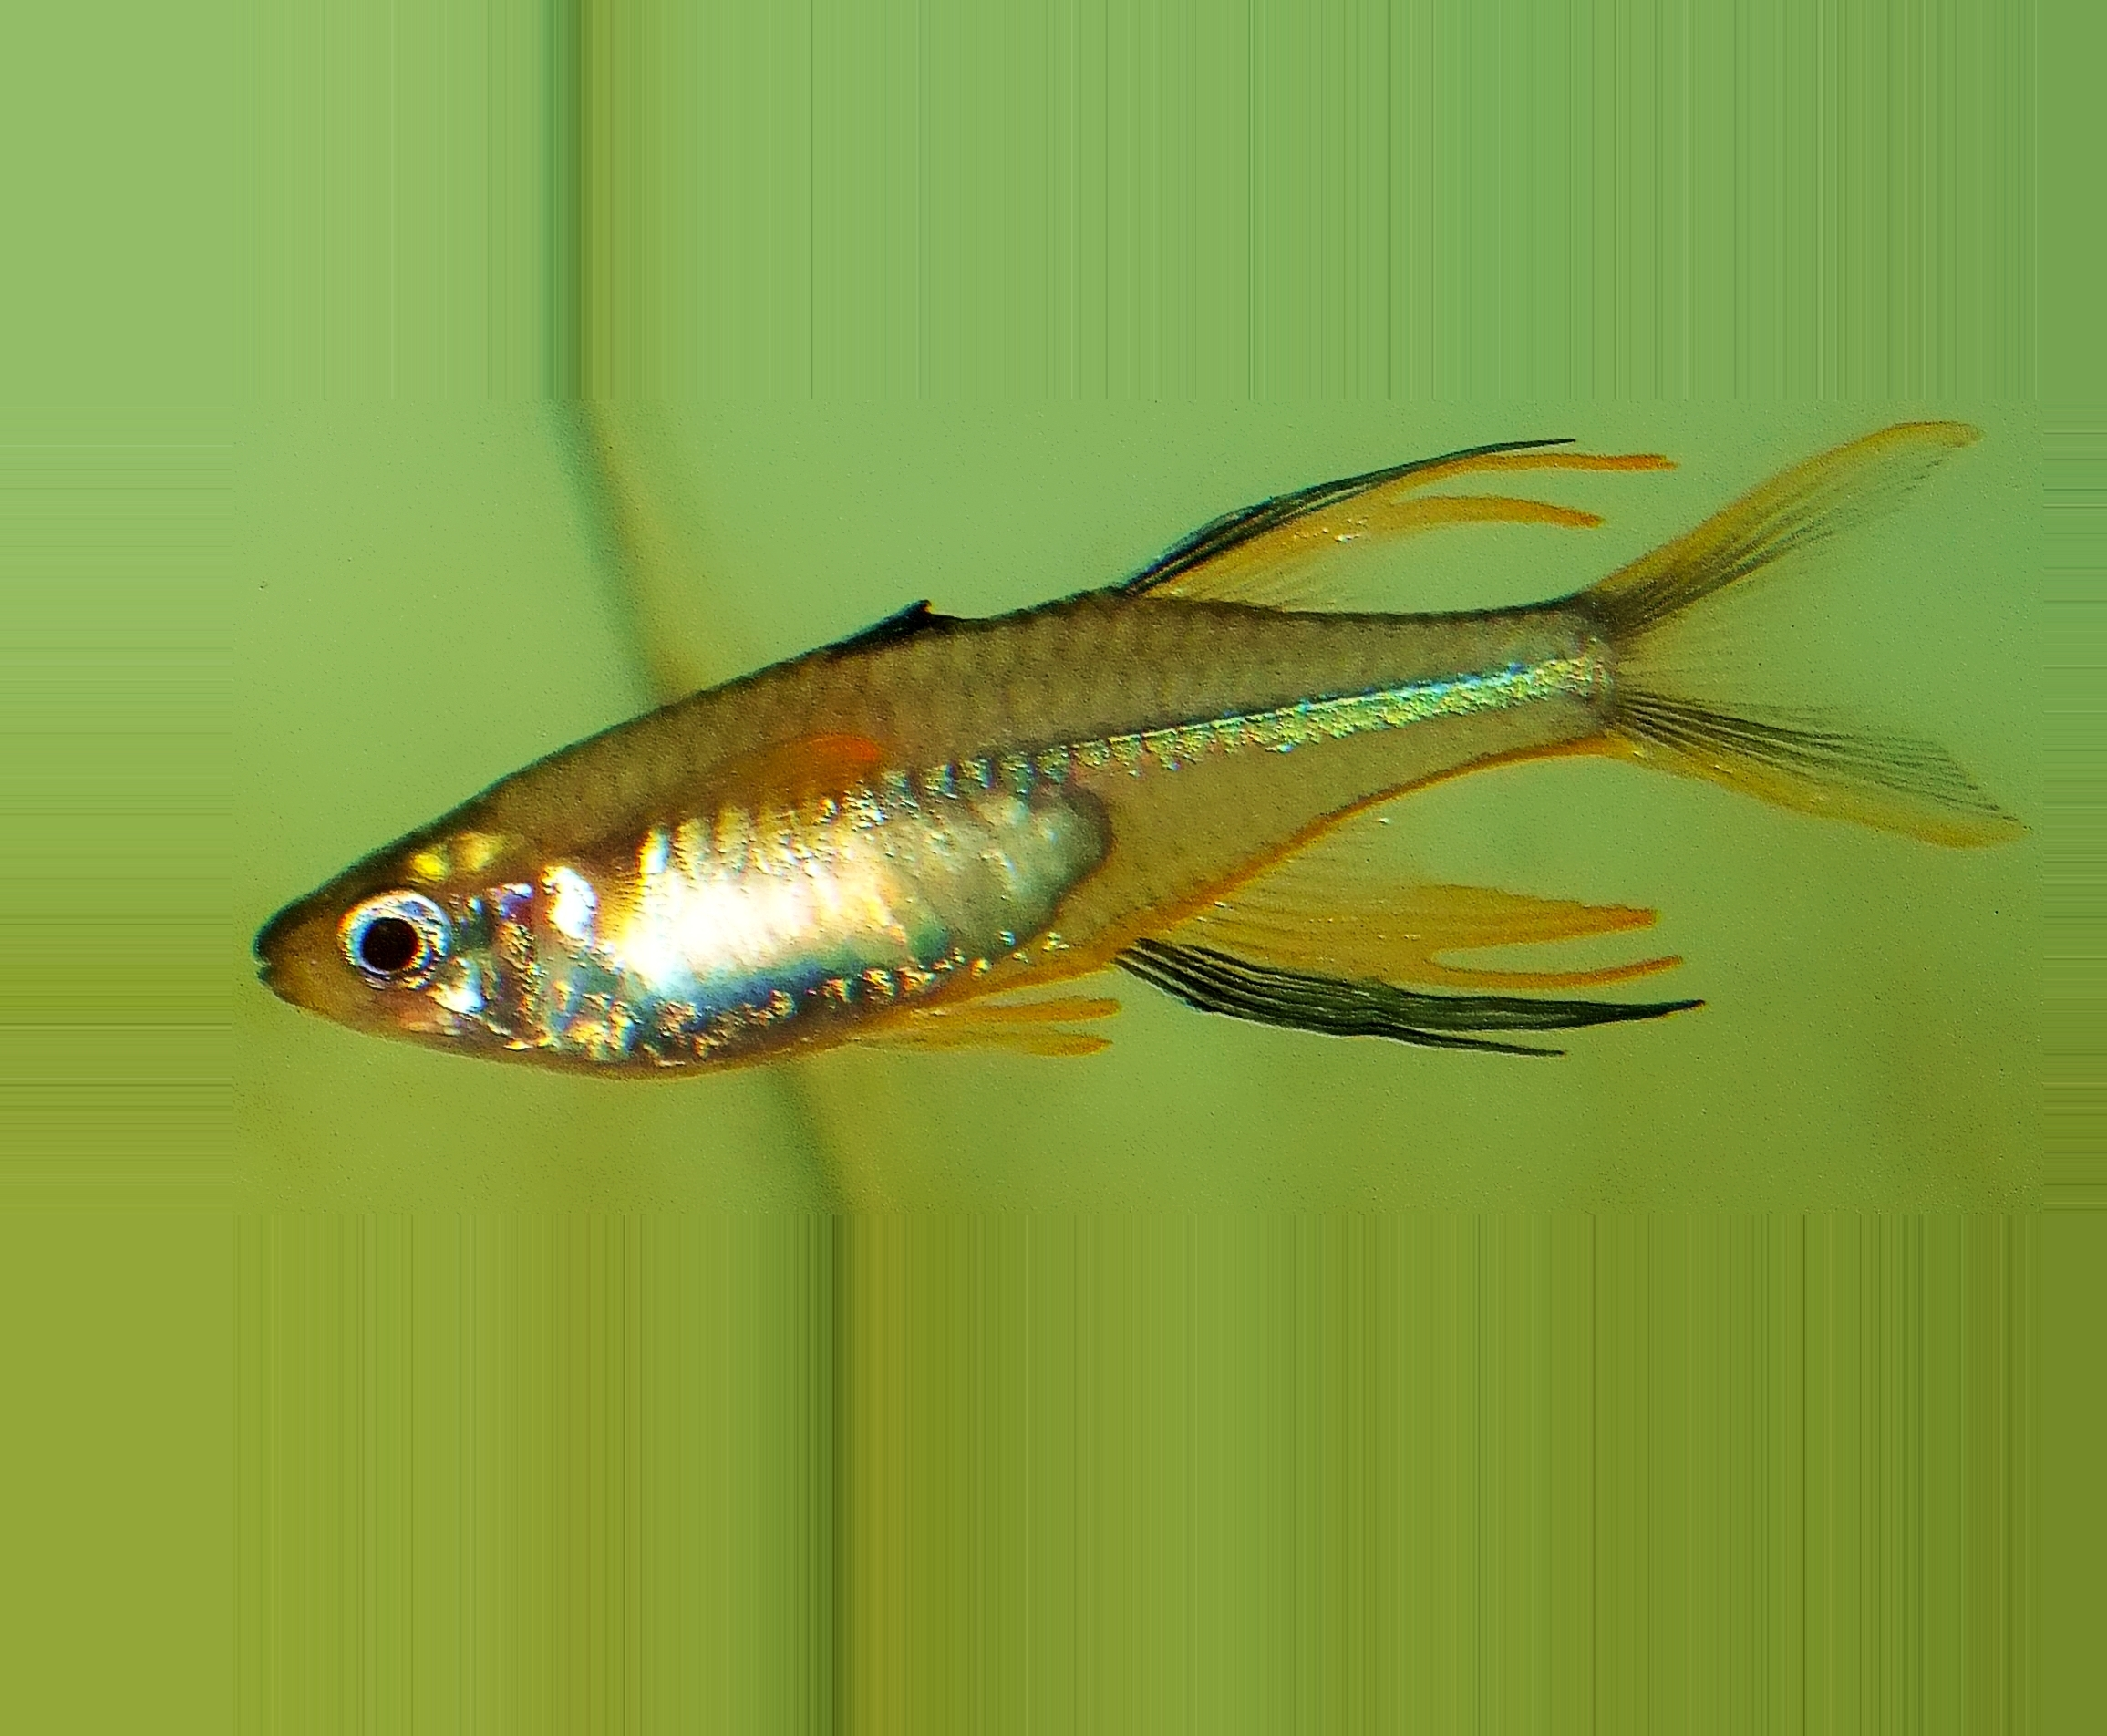 A male Celebes Rainbowfish in a large, freshwater aquarium; this fish has continued to live for a very long time. Photo by Thomas Peace c. 2015